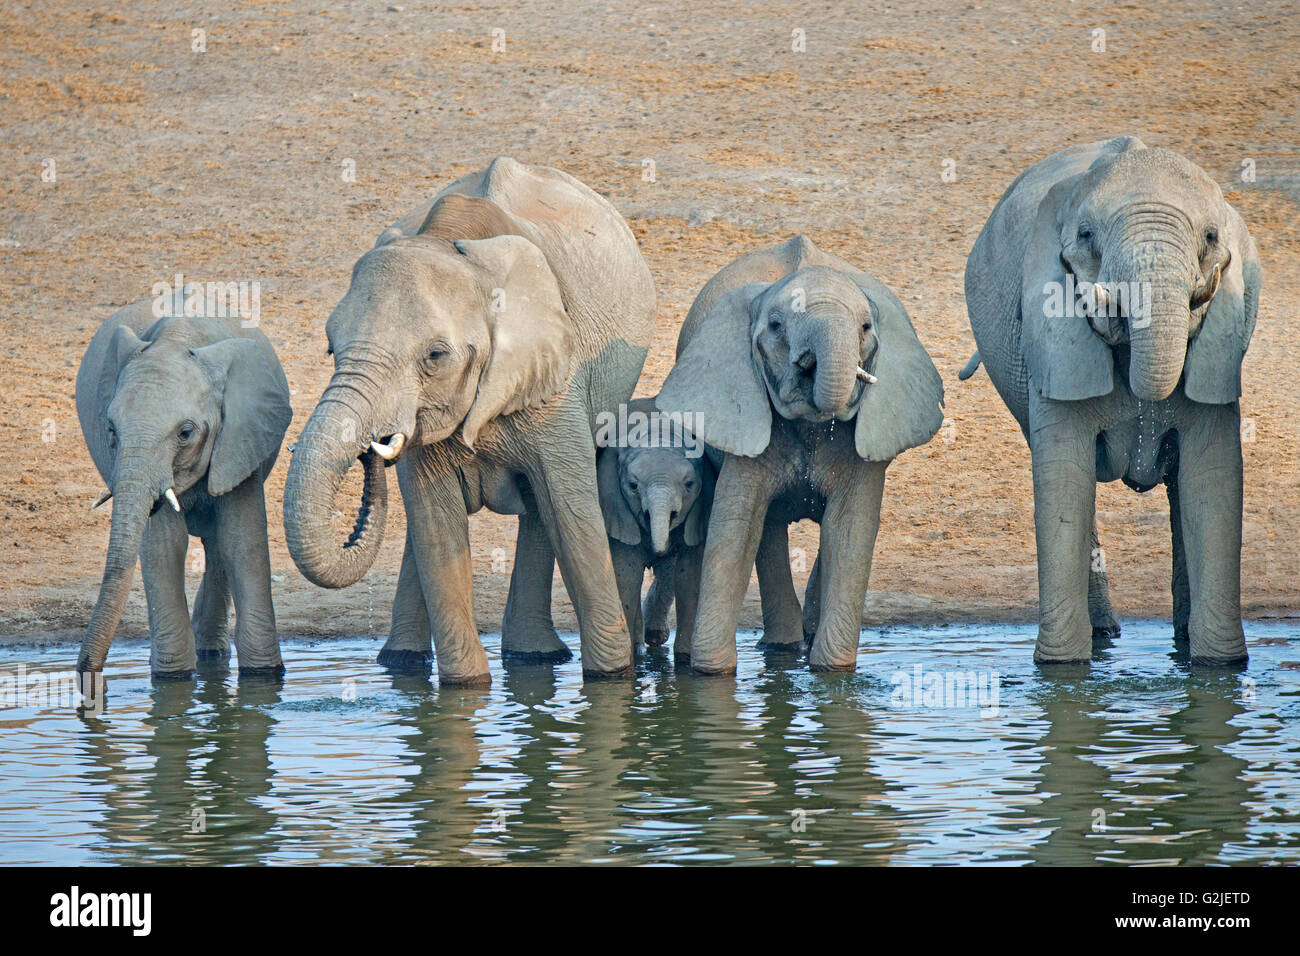 African elephant (Loxodonta africana) family coming to a waterhole to drink, Etosha National Park, Namibia, southern Africa Stock Photo